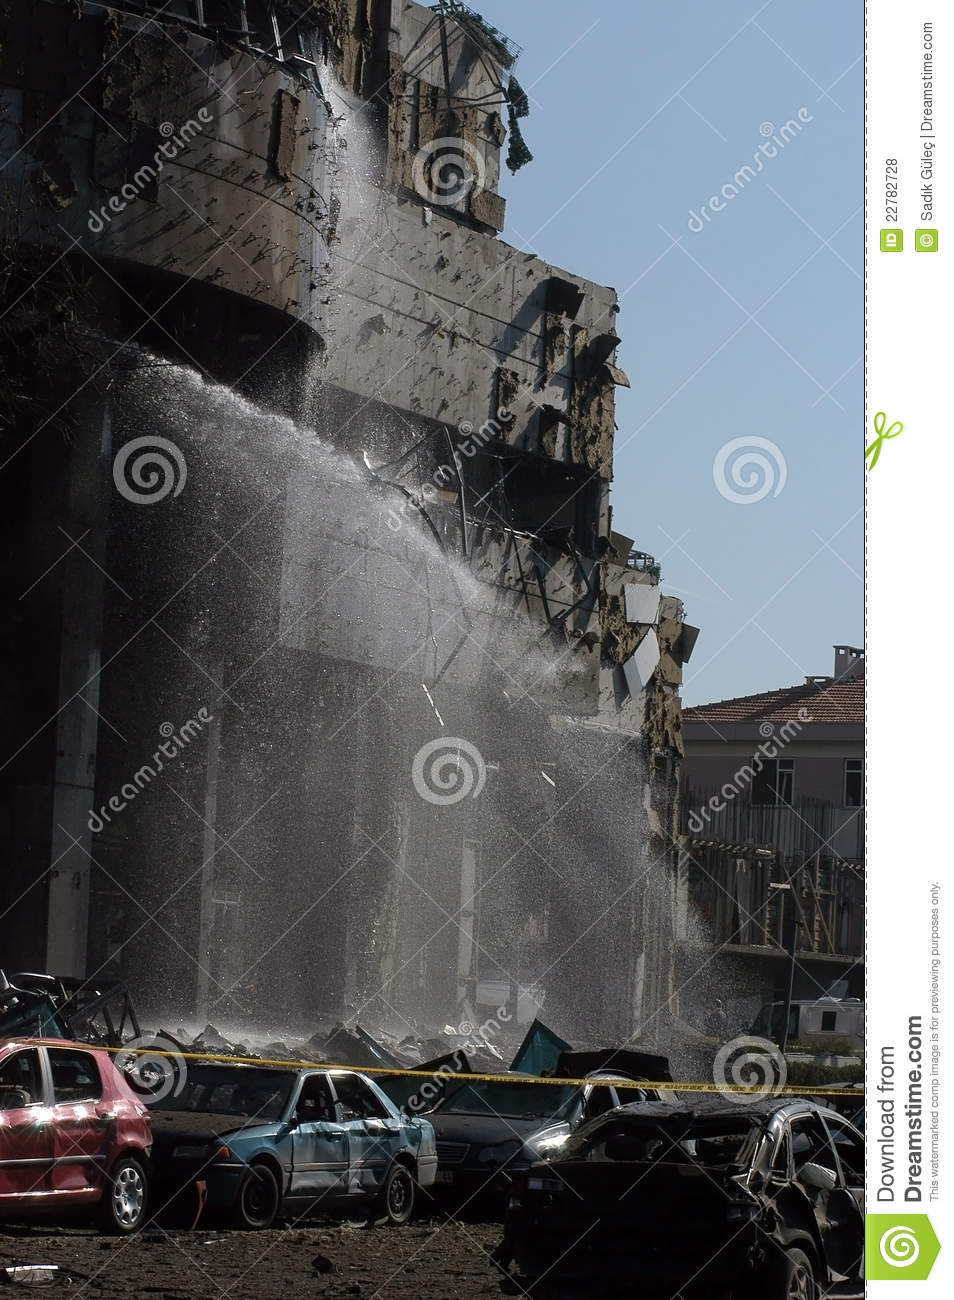 Bomb Attacks On The HSBC Bank Editorial Stock Photo - Image of